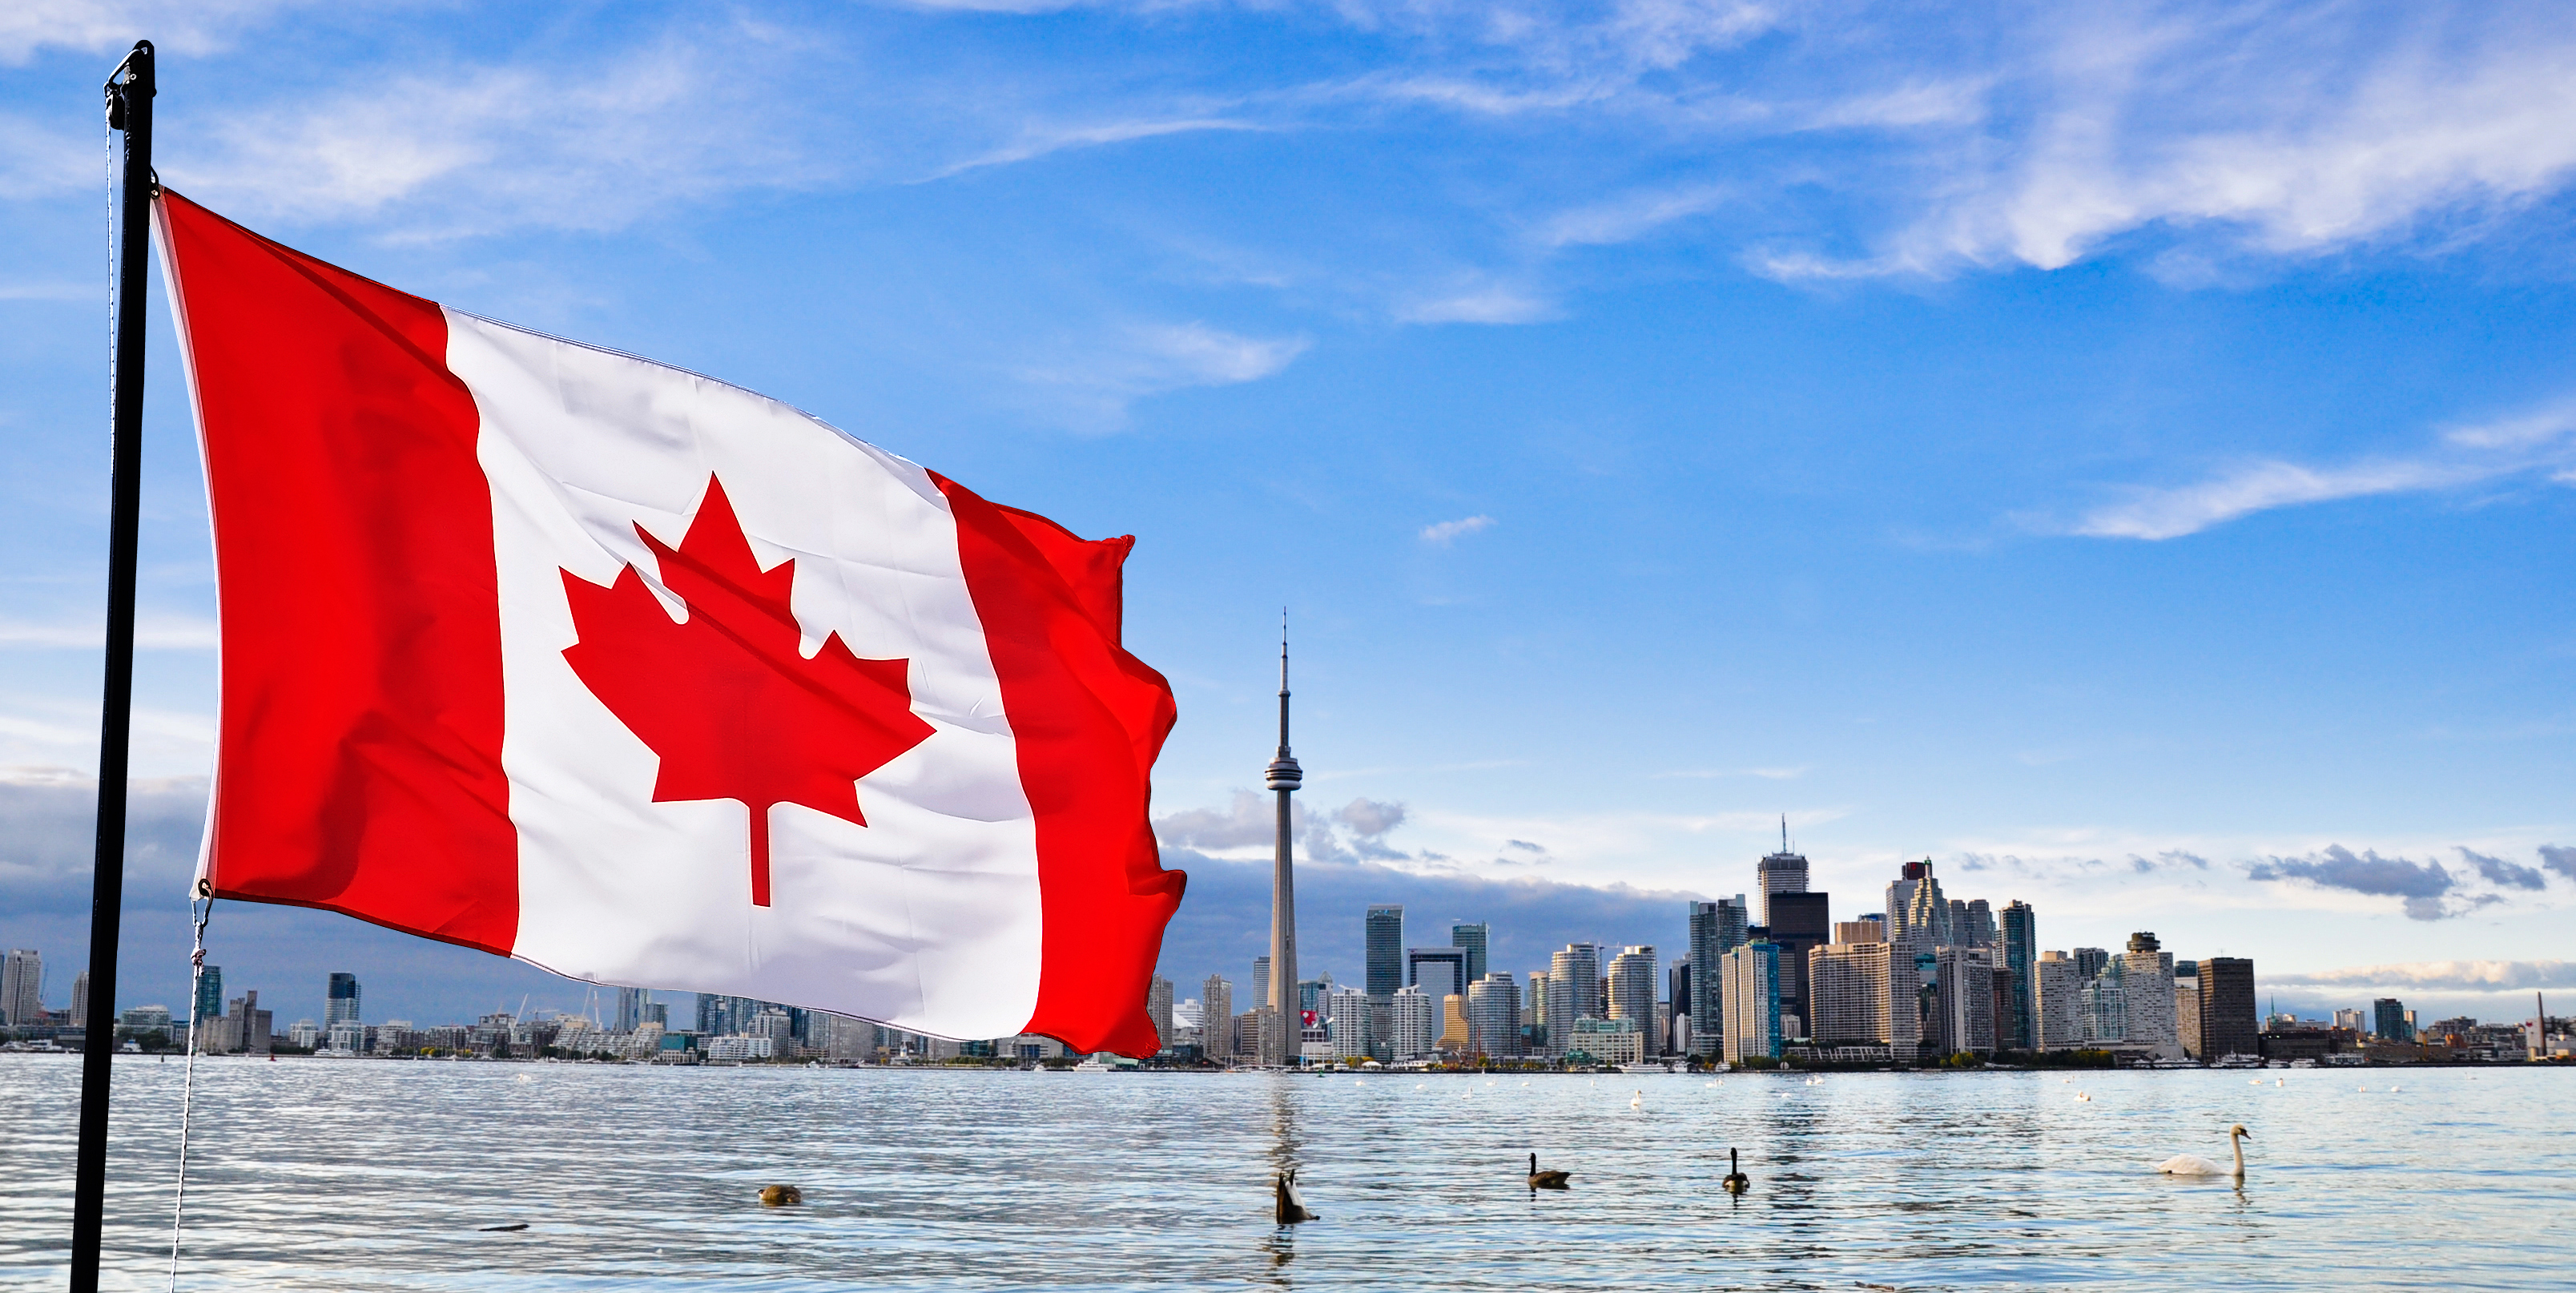 do you need a passport to enter canada from the US?